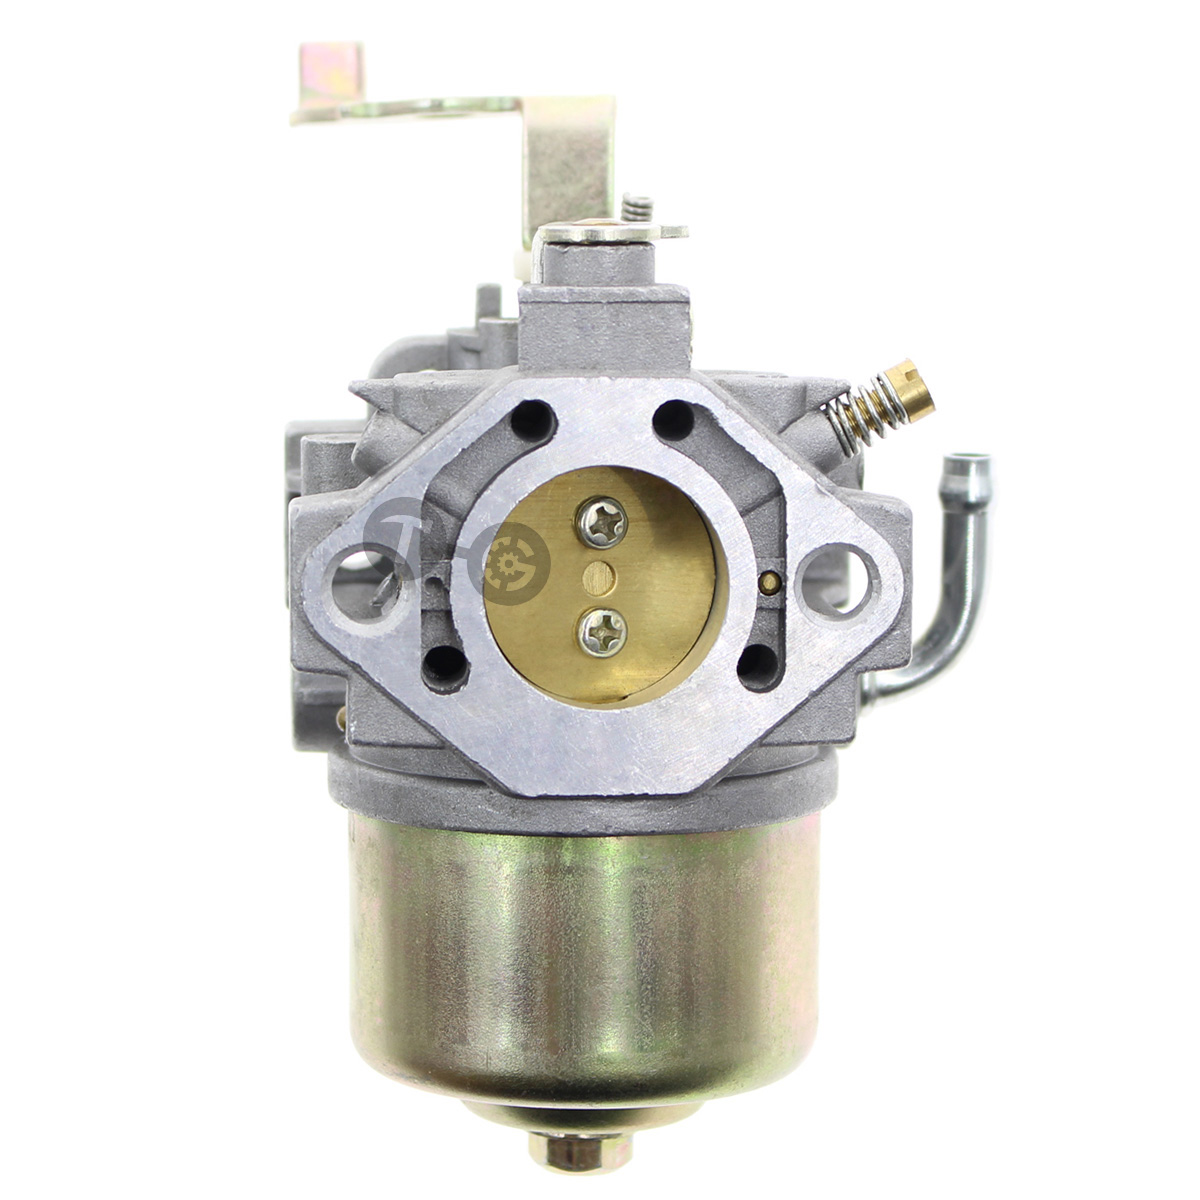 hight resolution of carburetor carb fuel filter line for subaru robin ey28 ey 28 wisconsin wi 280